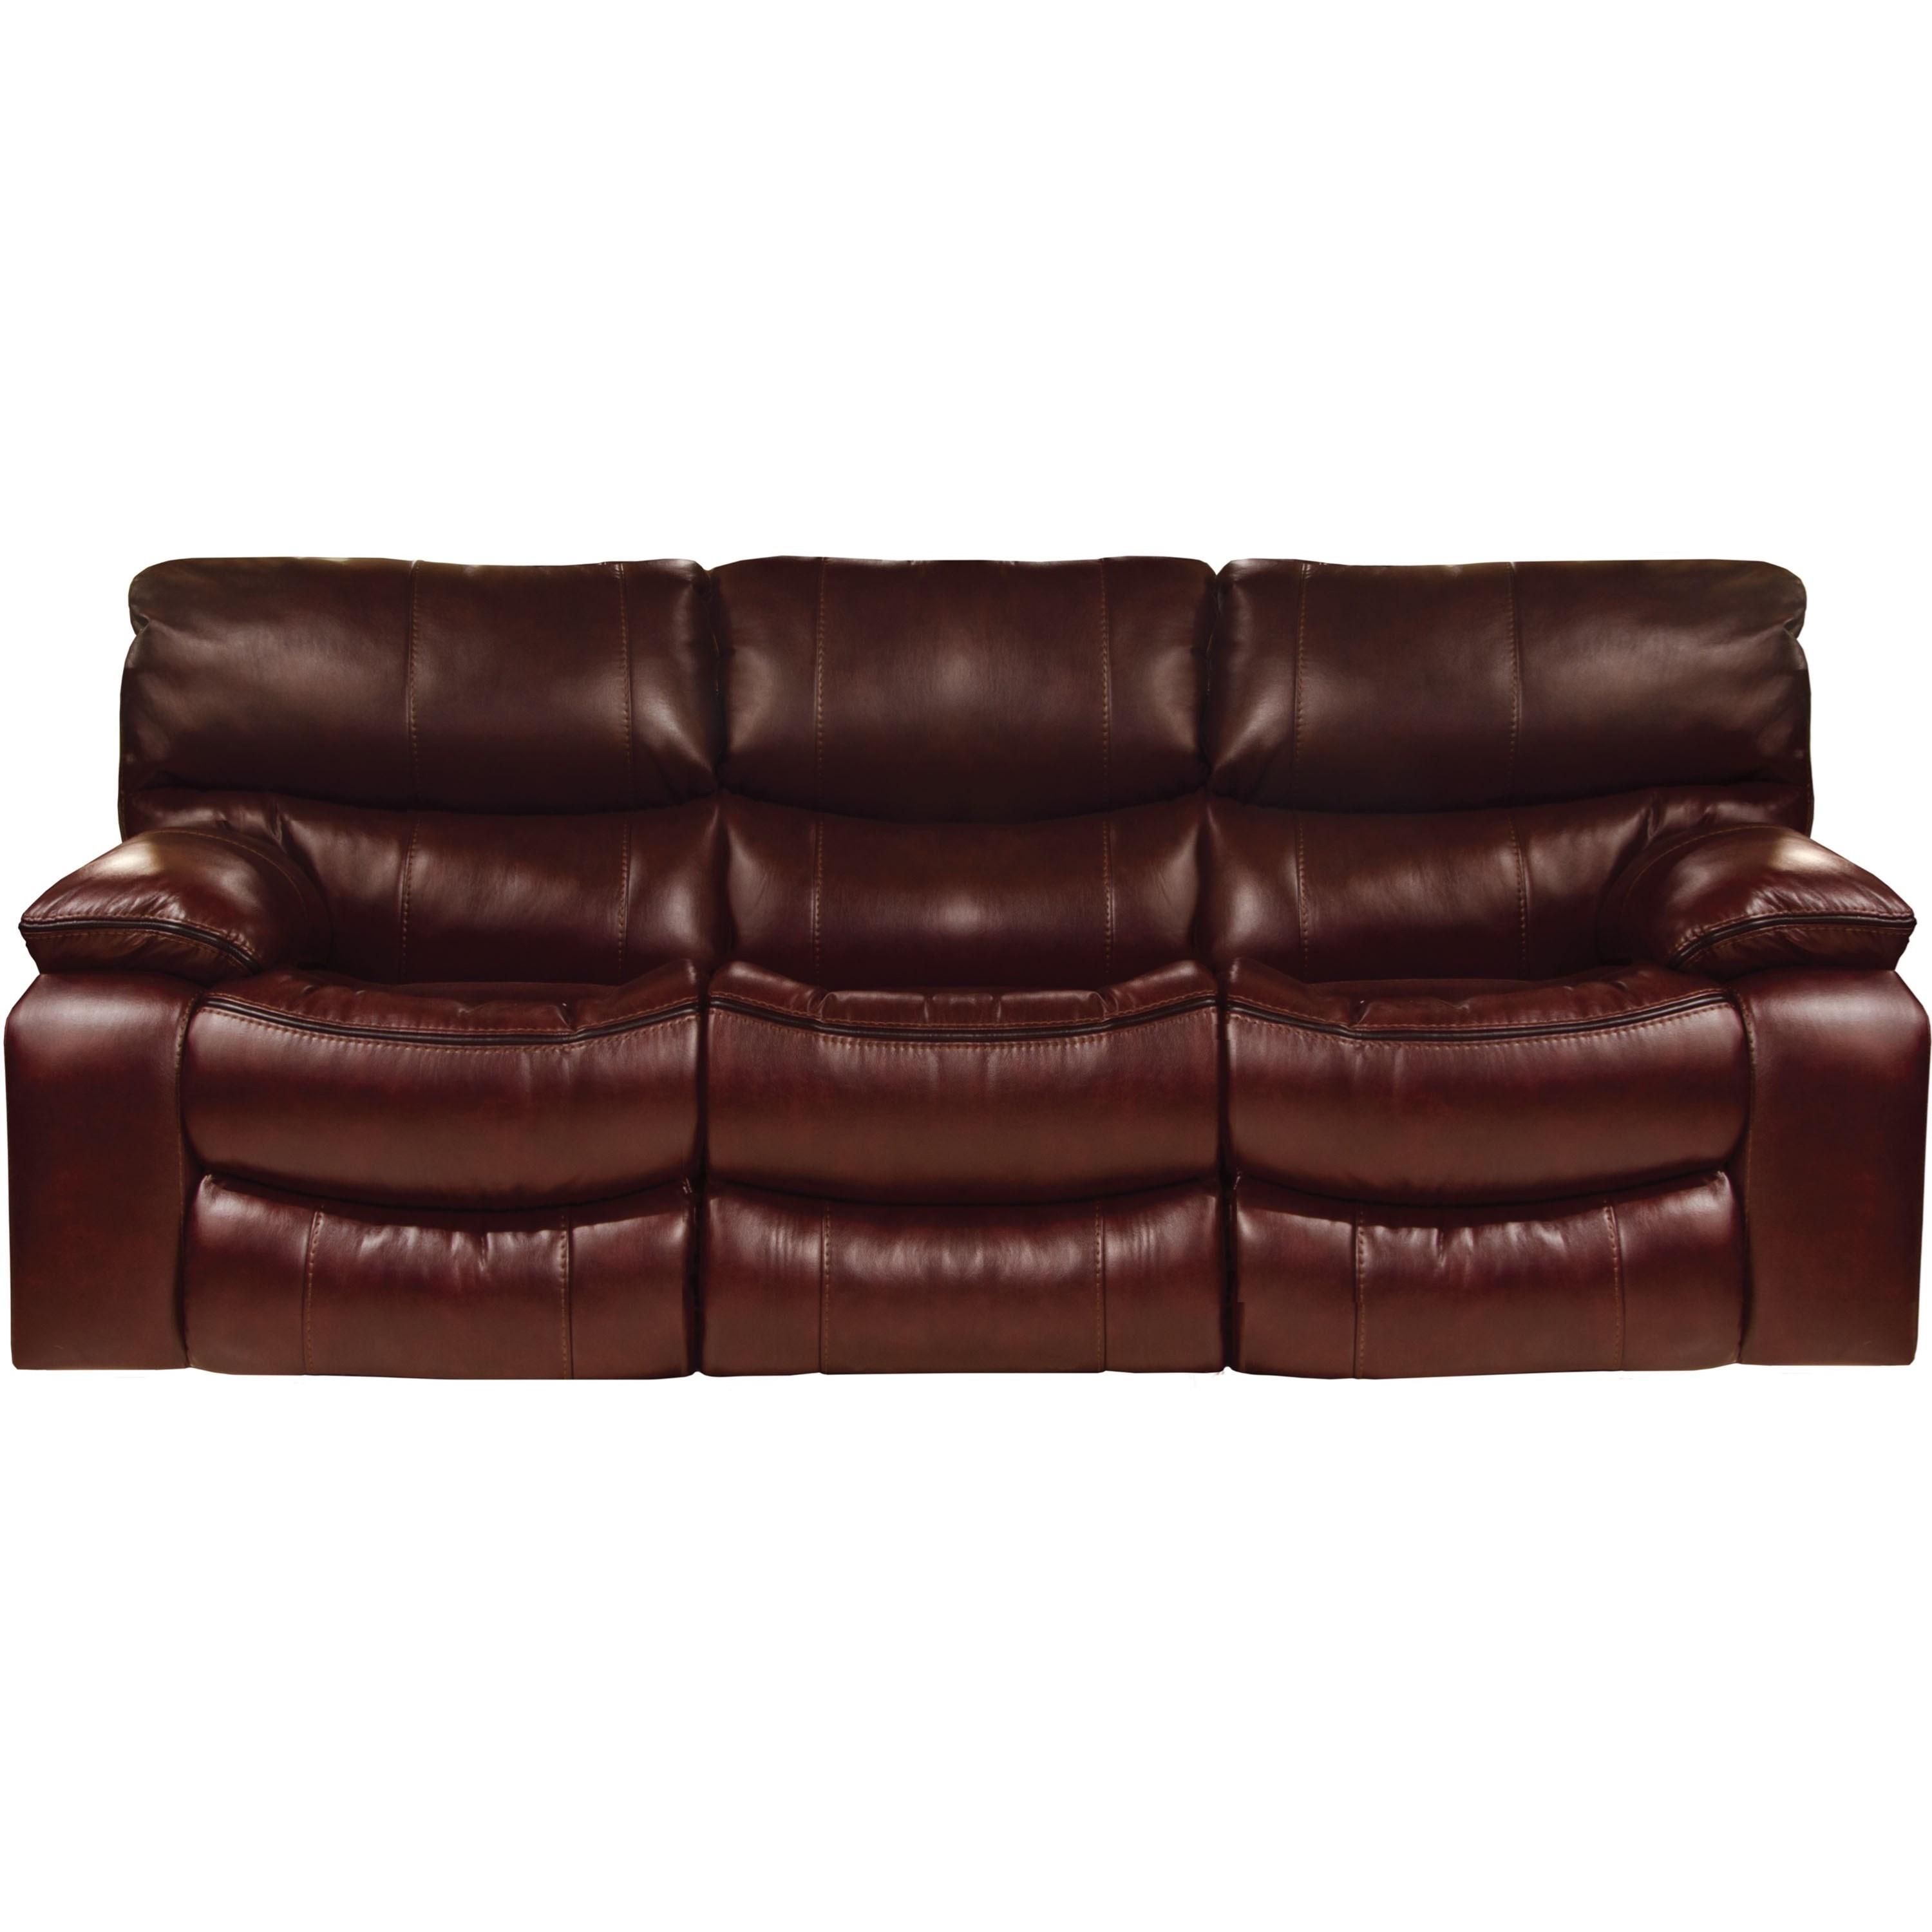 Sofa Welt Lay Flat Reclining Sofa With Welt Stitching By Catnapper